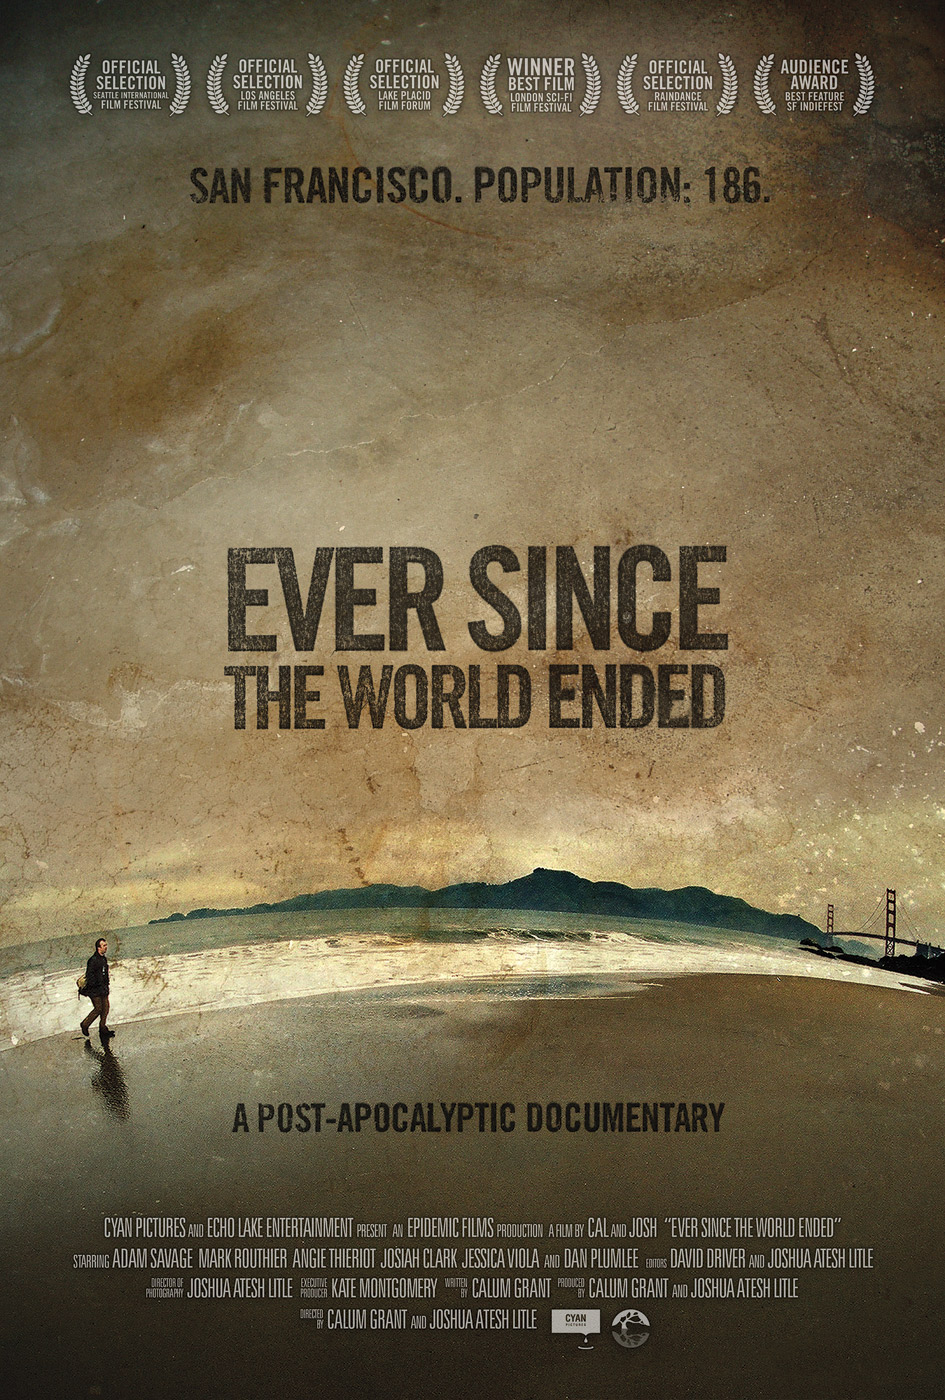 Ever since the world ended movie poster